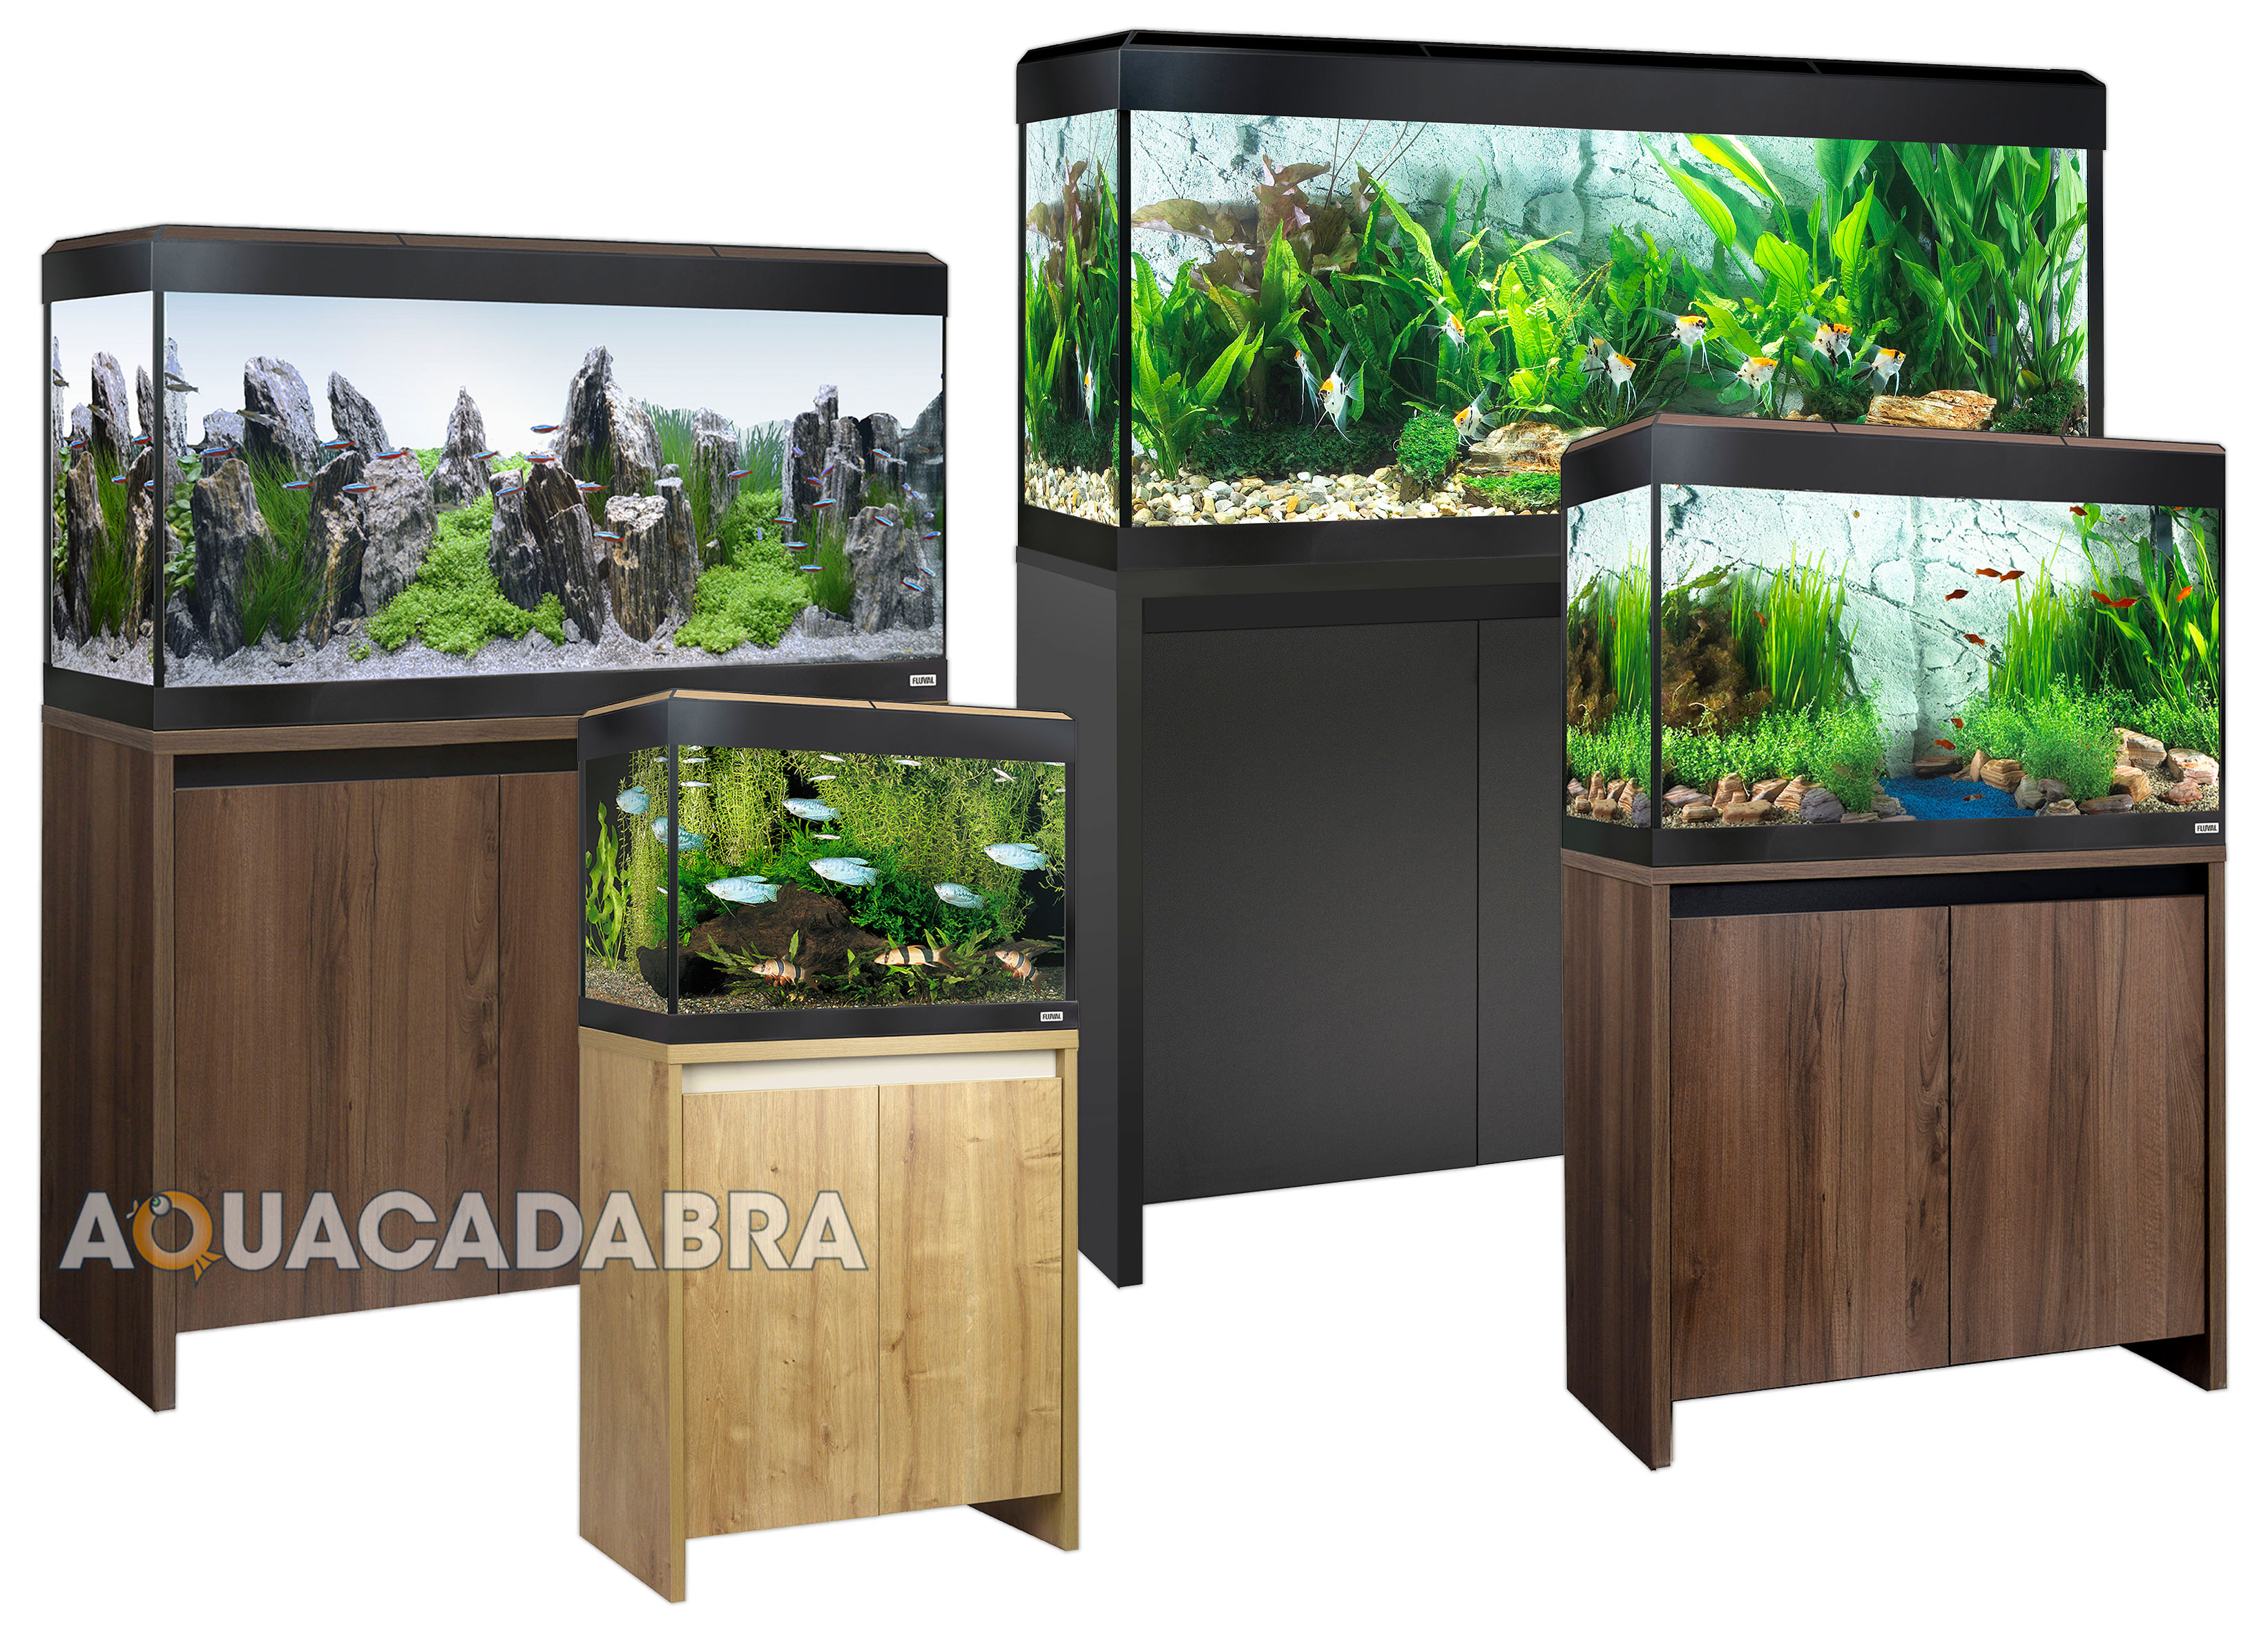 Fluval roma 240 aquarium fish tank - Fluval Roma Led Aquariums 90 125 200 240l Oak Walnut Black New Cabinet Fish Tank